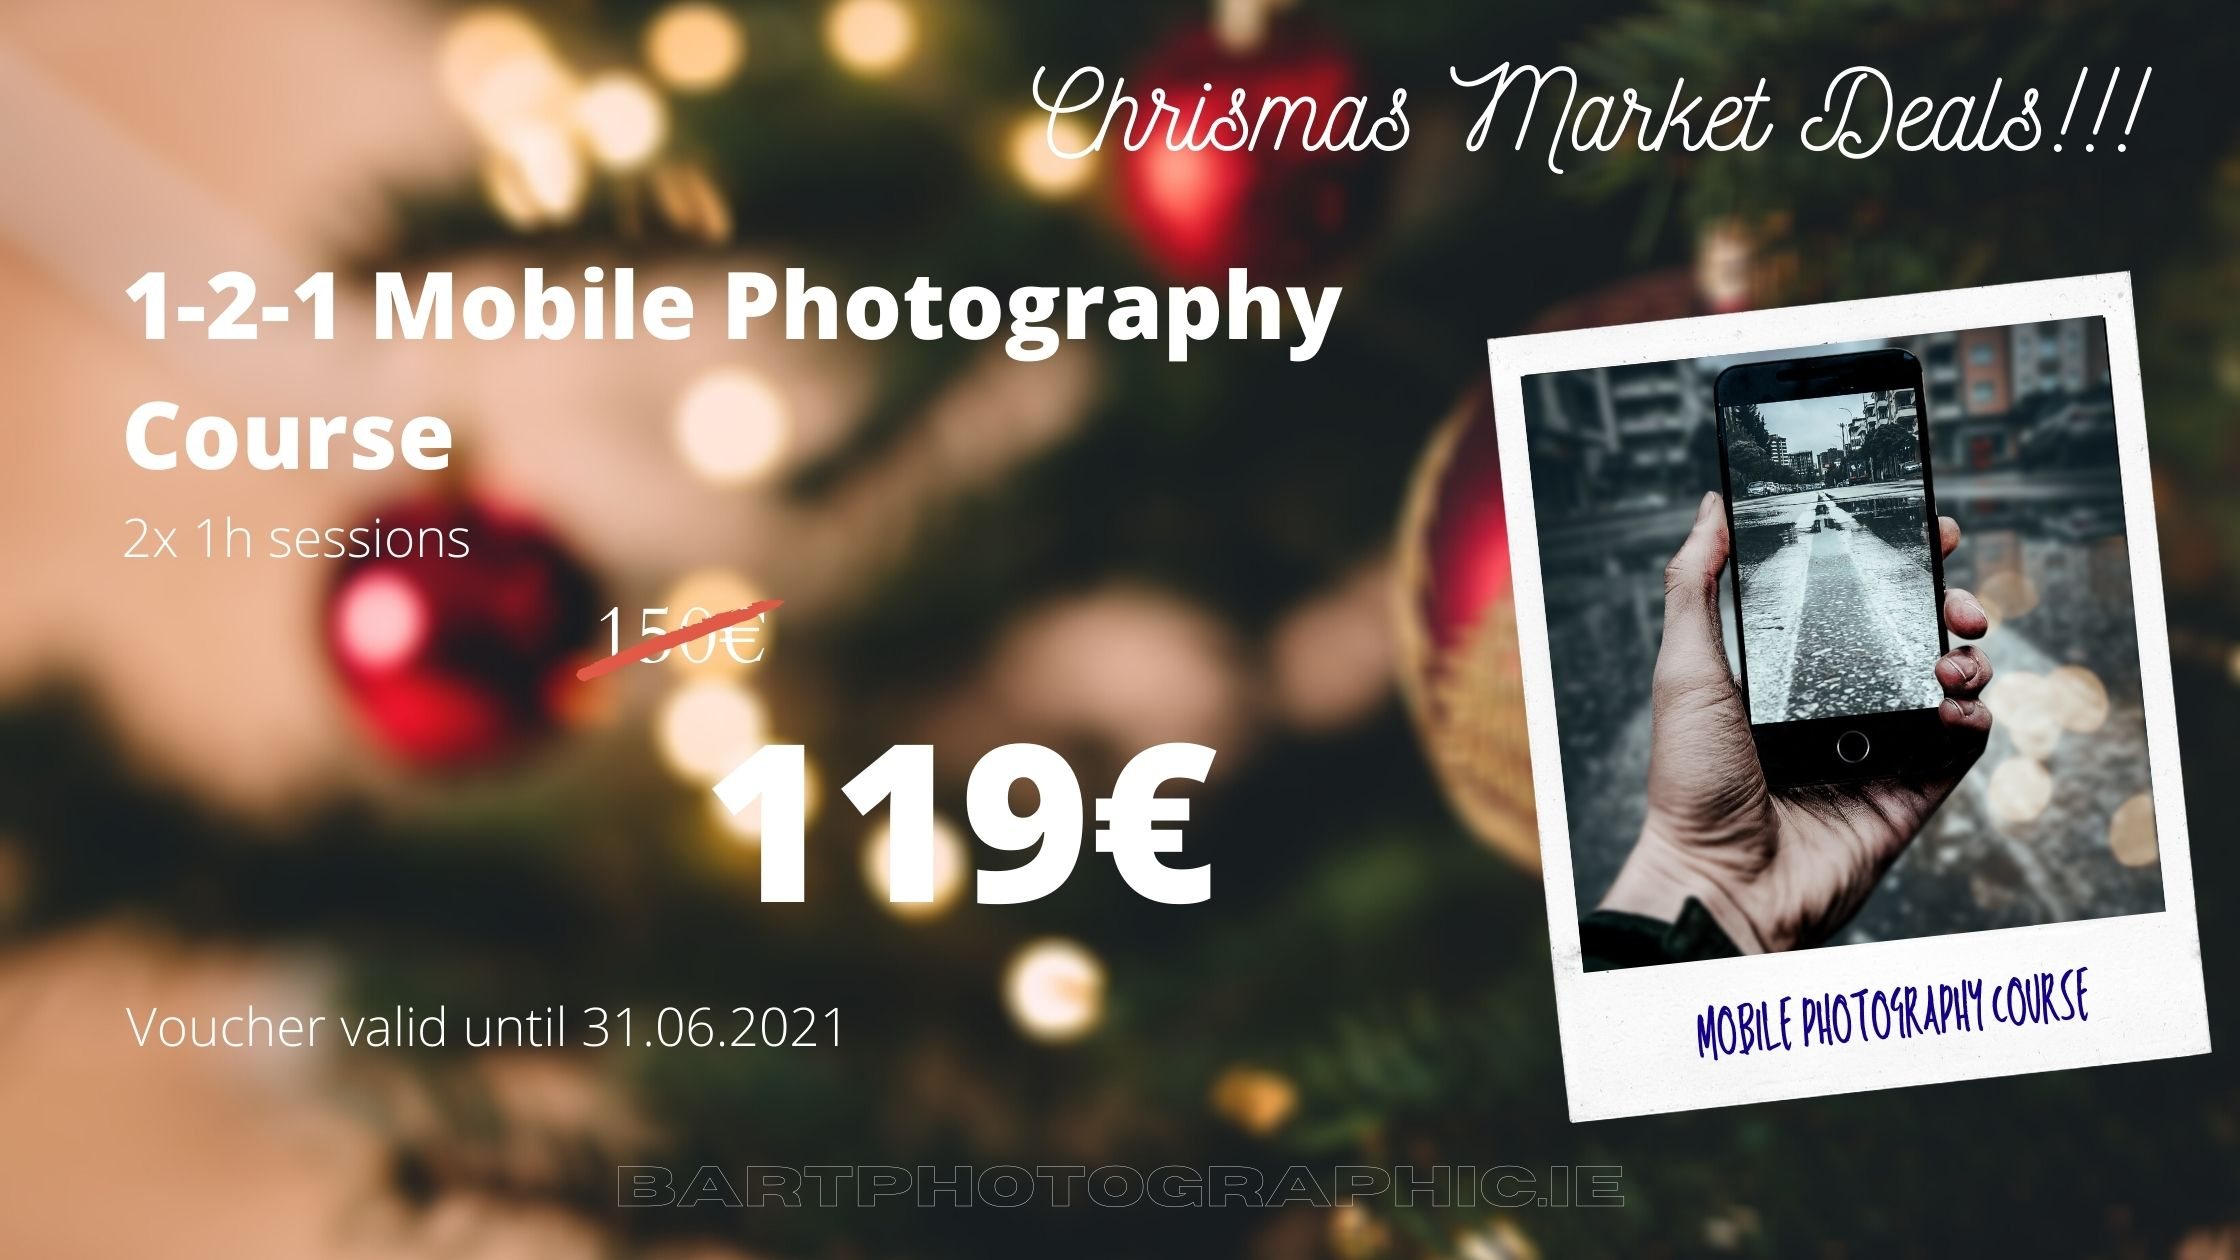 1-2-1 Mobile Photography Course 119€